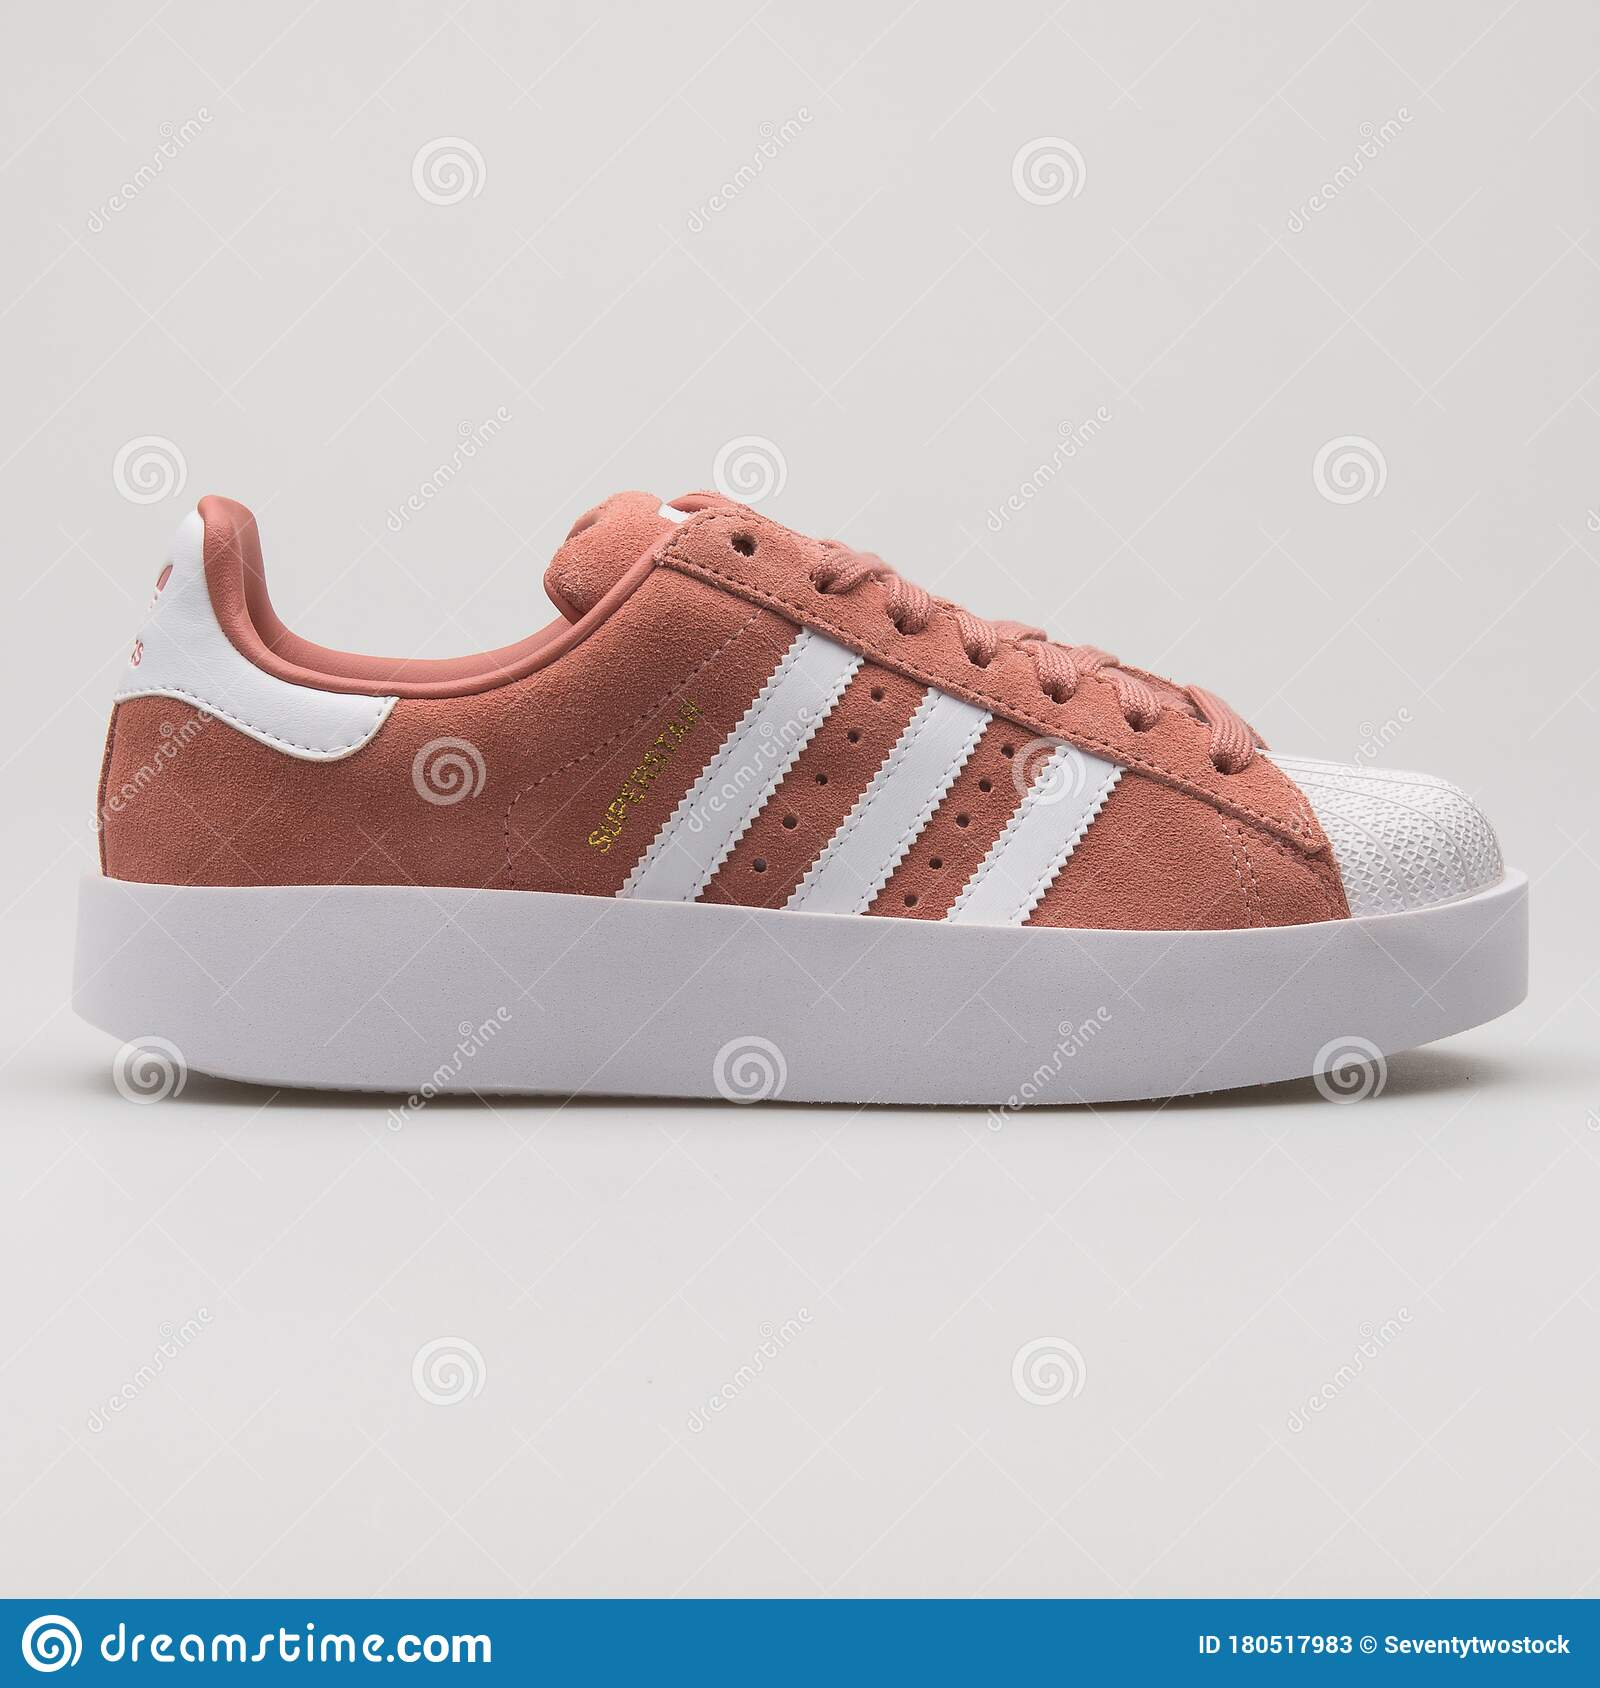 Adidas Superstar Bold Pink And White Sneaker Editorial Stock Photo ...